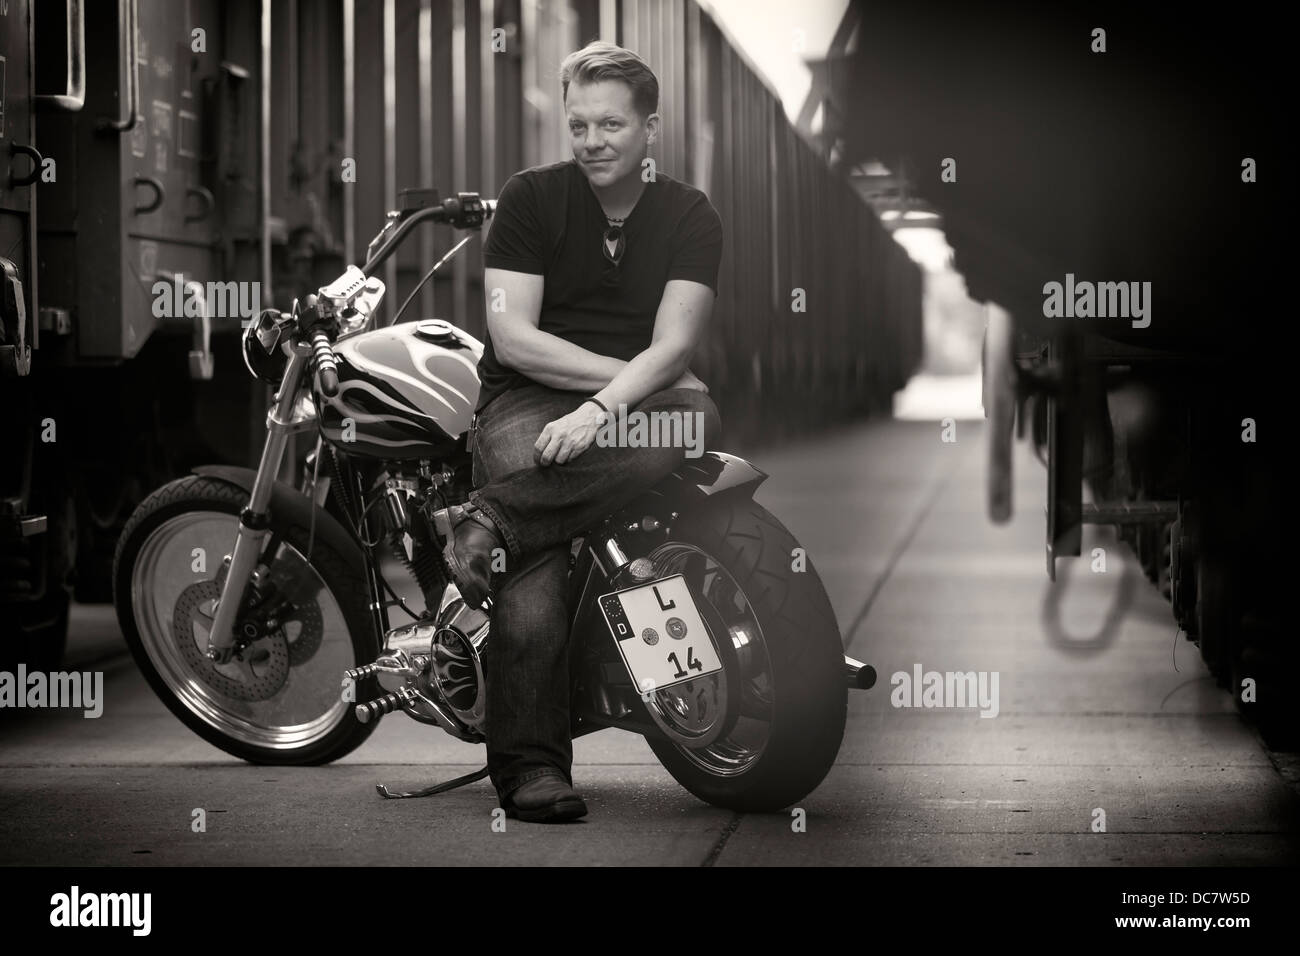 Young Man Harley Davidson Stock Photos & Young Man Harley Davidson